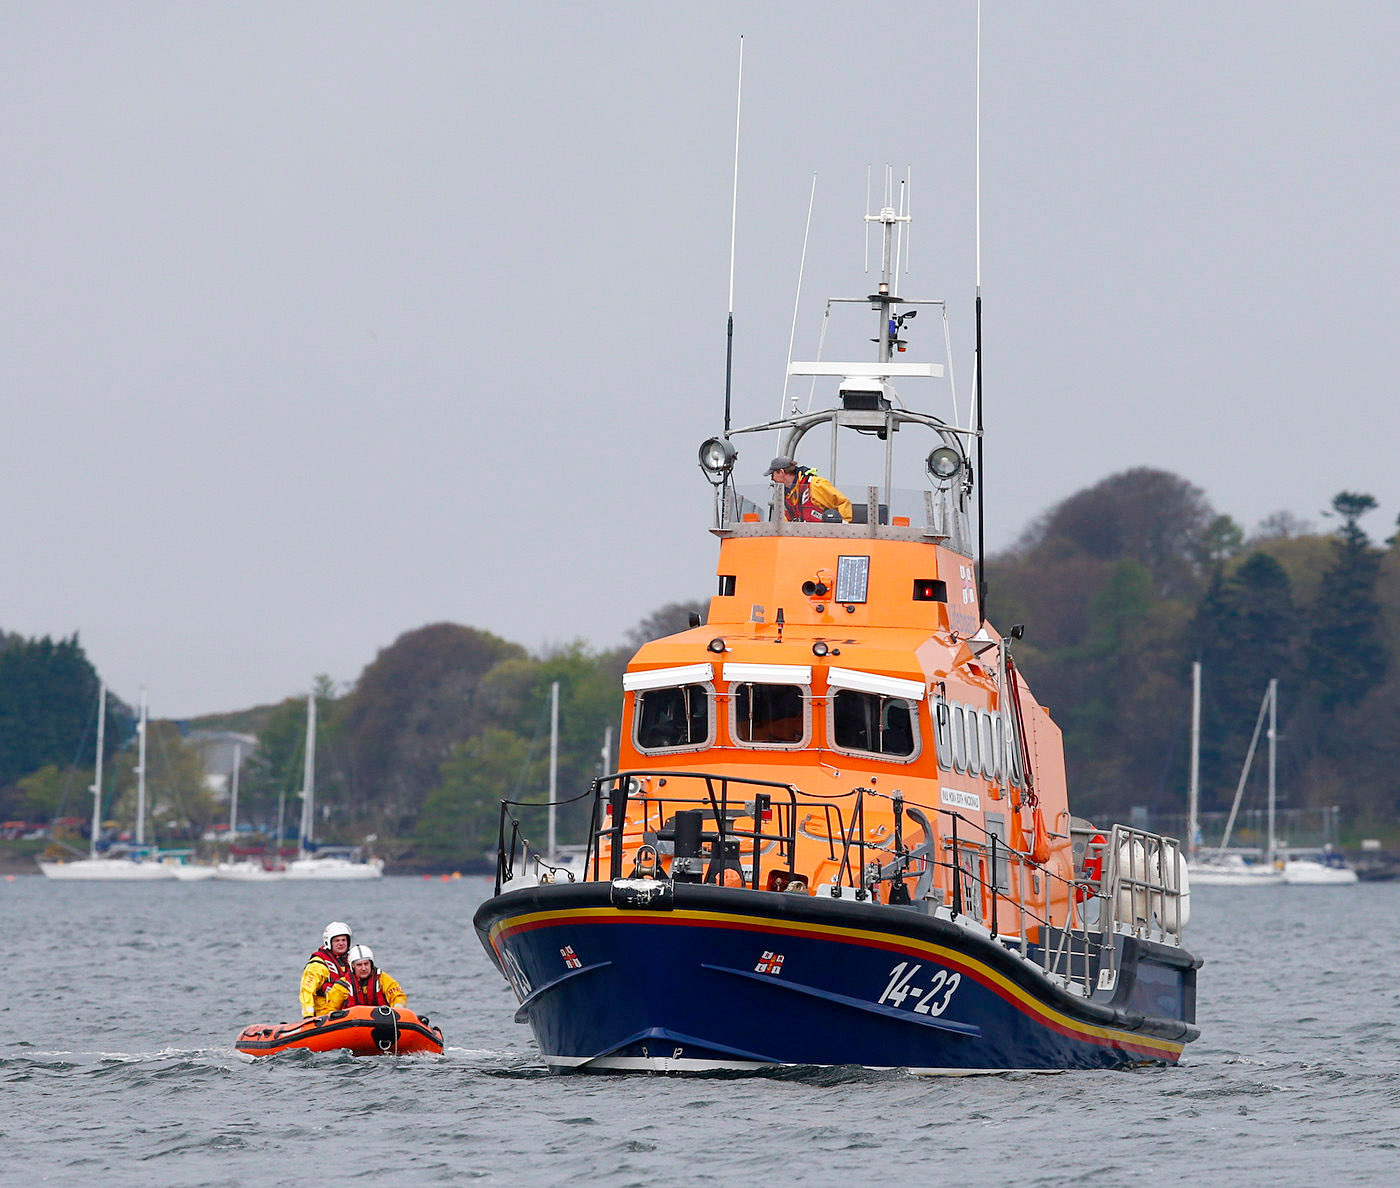 Oban lifeboat in action.